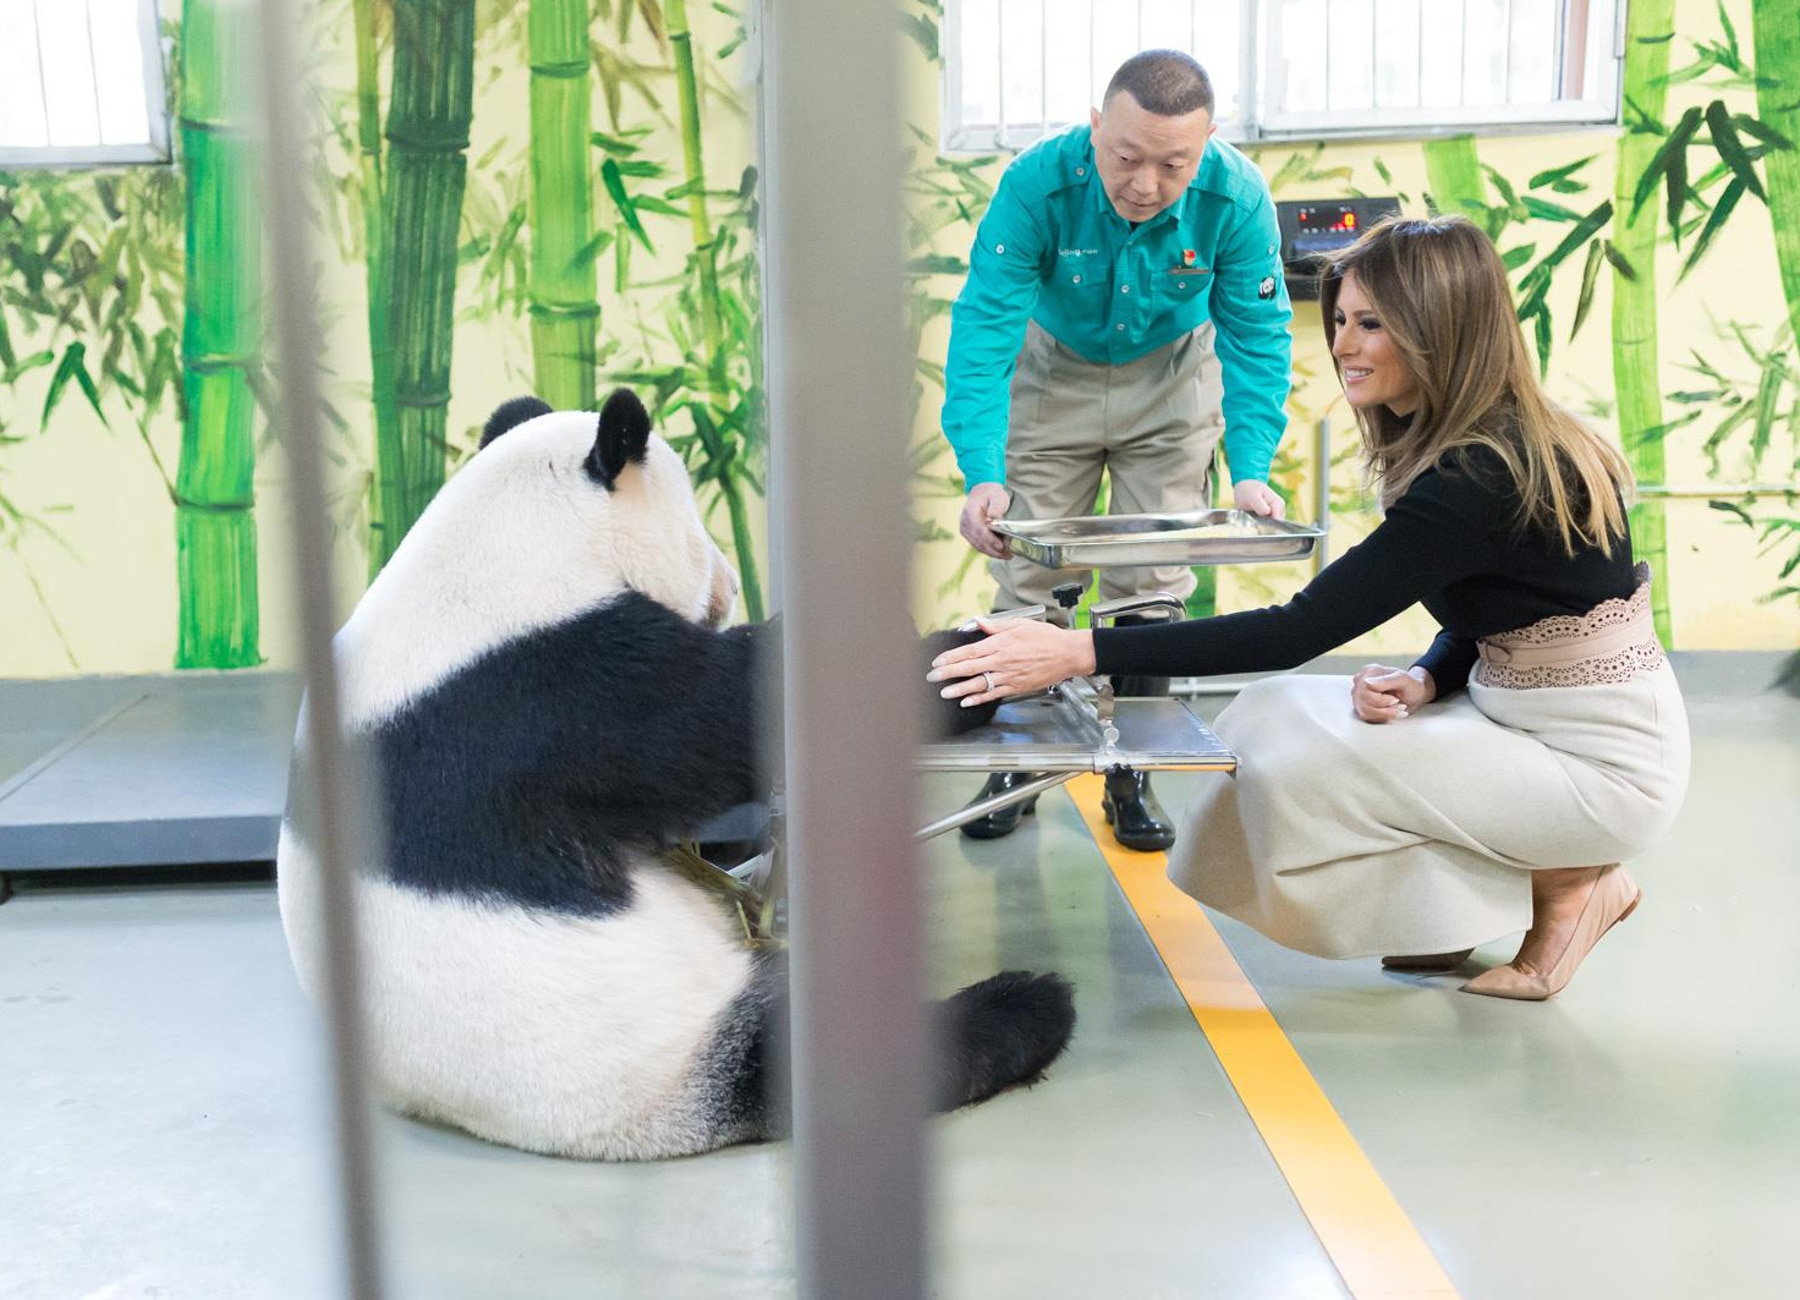 Melania Trump petting a panda through a cage (The White House)